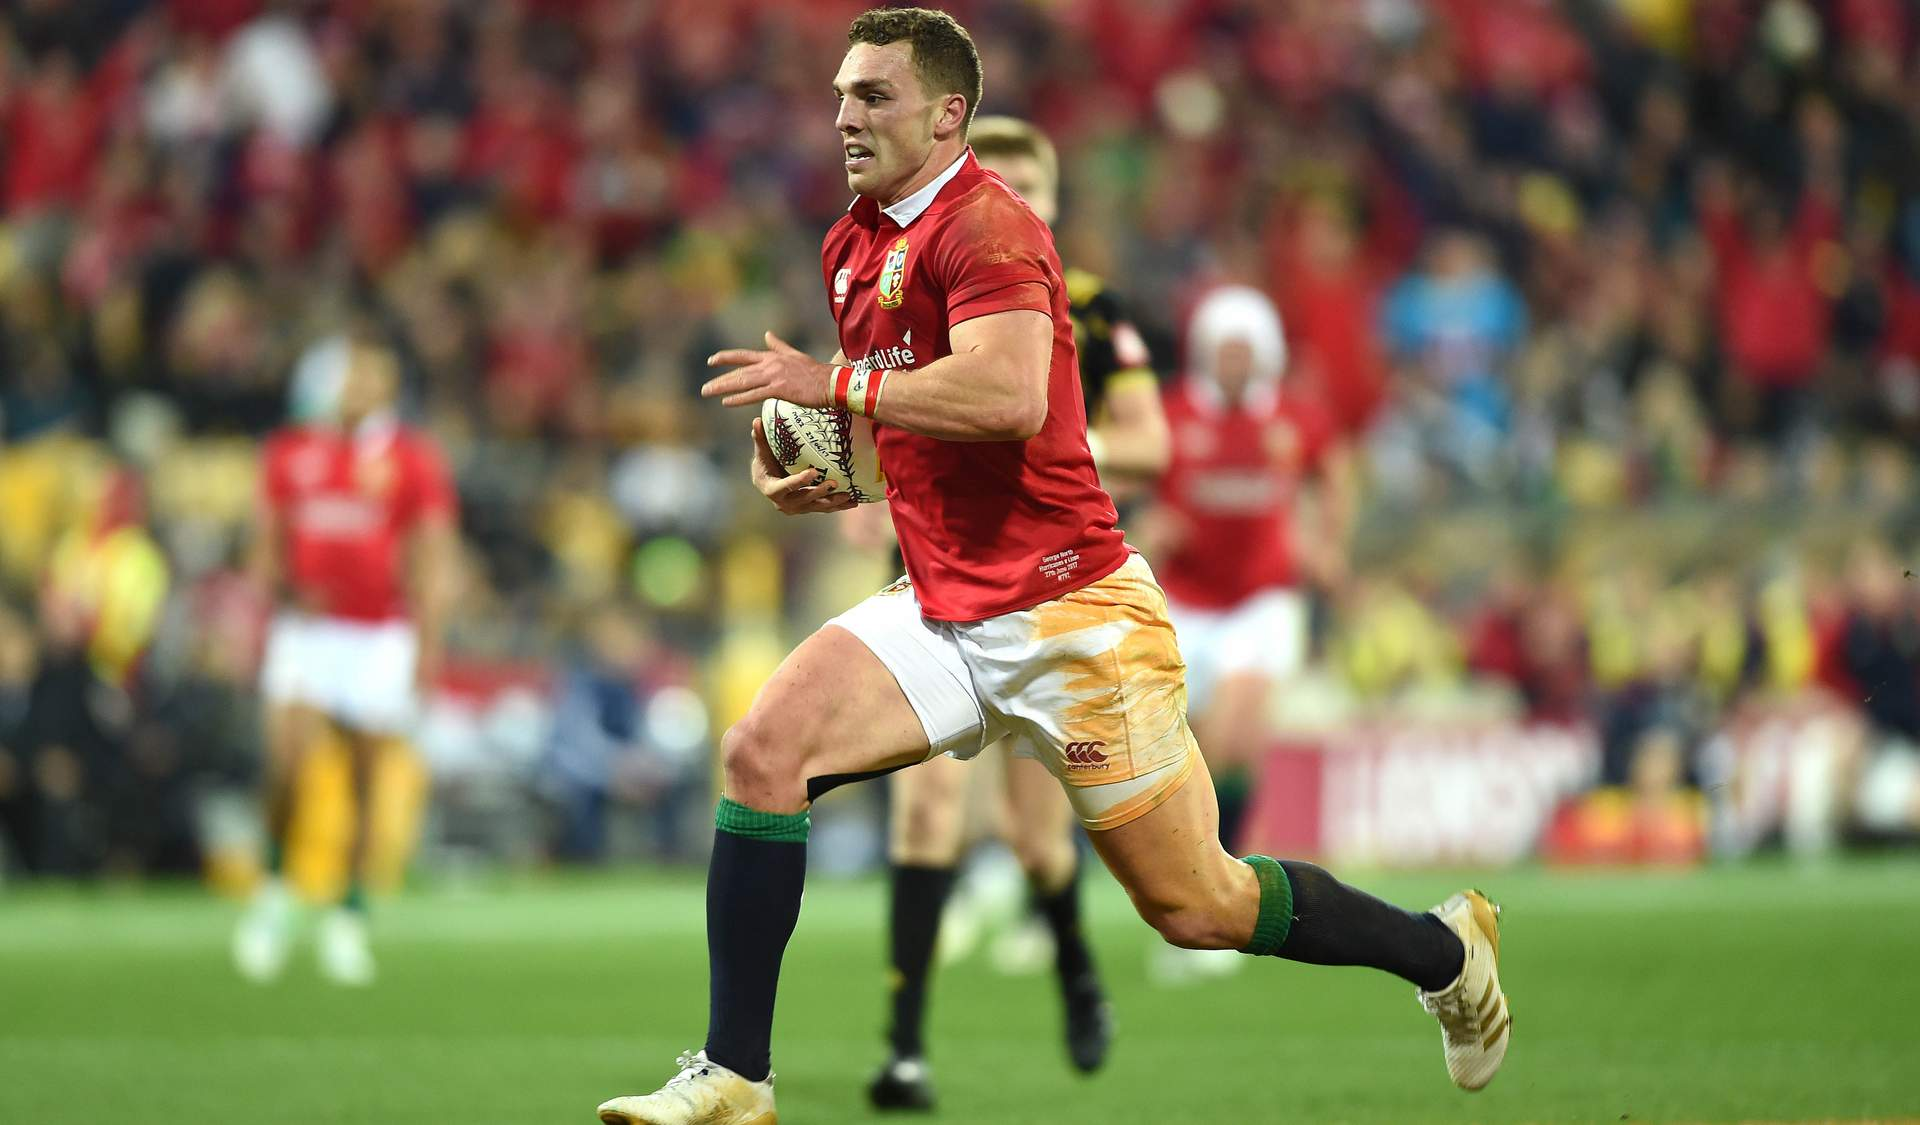 REPORT: Lions and Hurricanes share thrilling draw